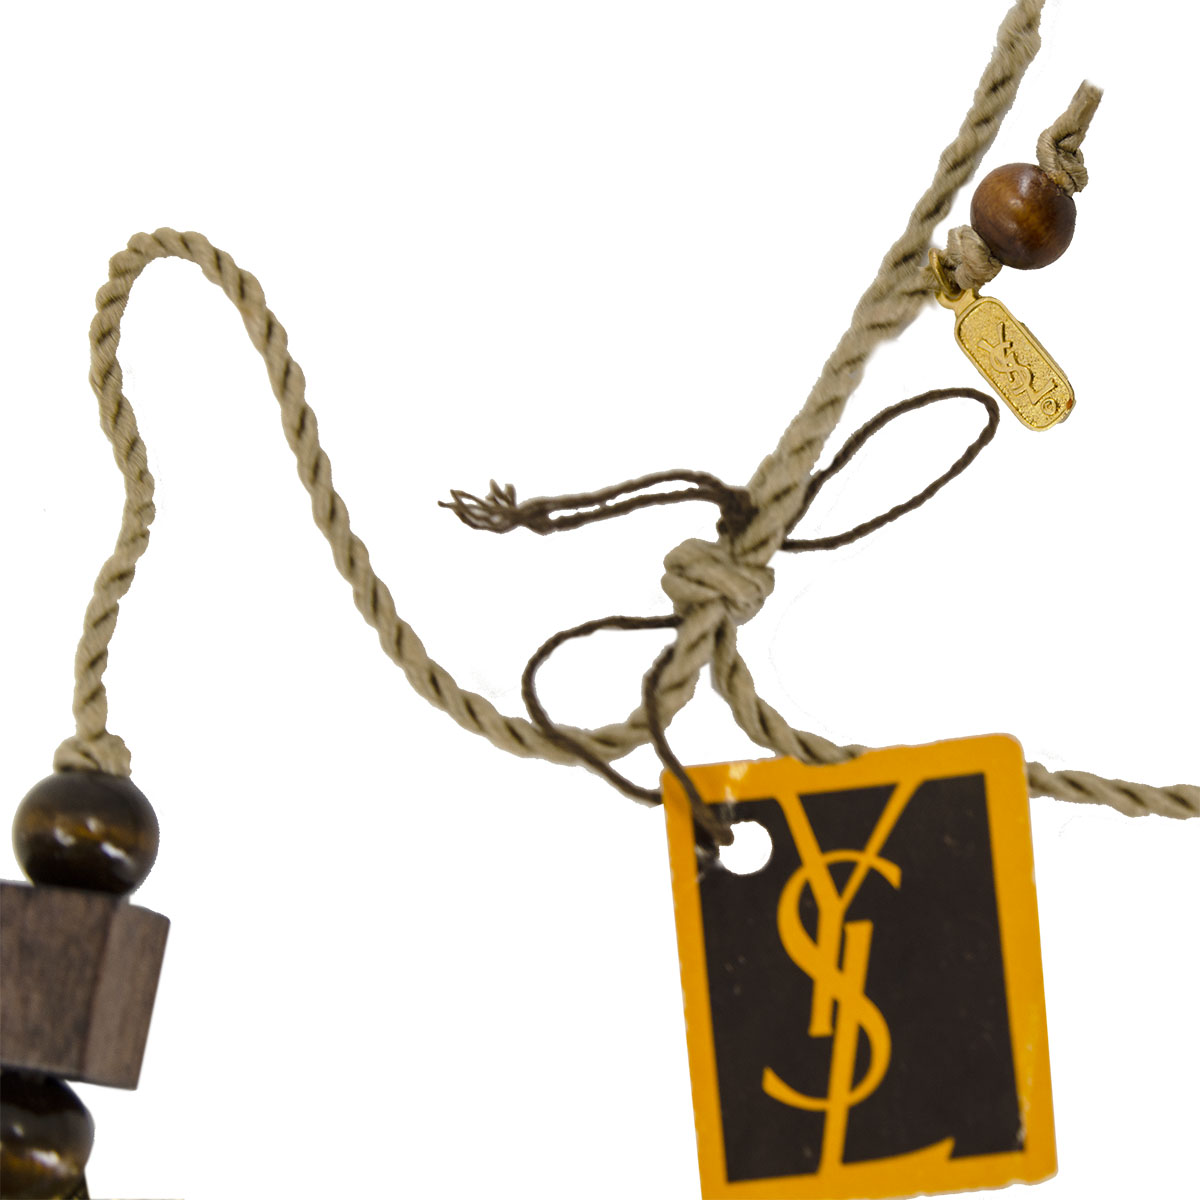 YSL hangtag wooden bead necklace yves saint laurent hang tag